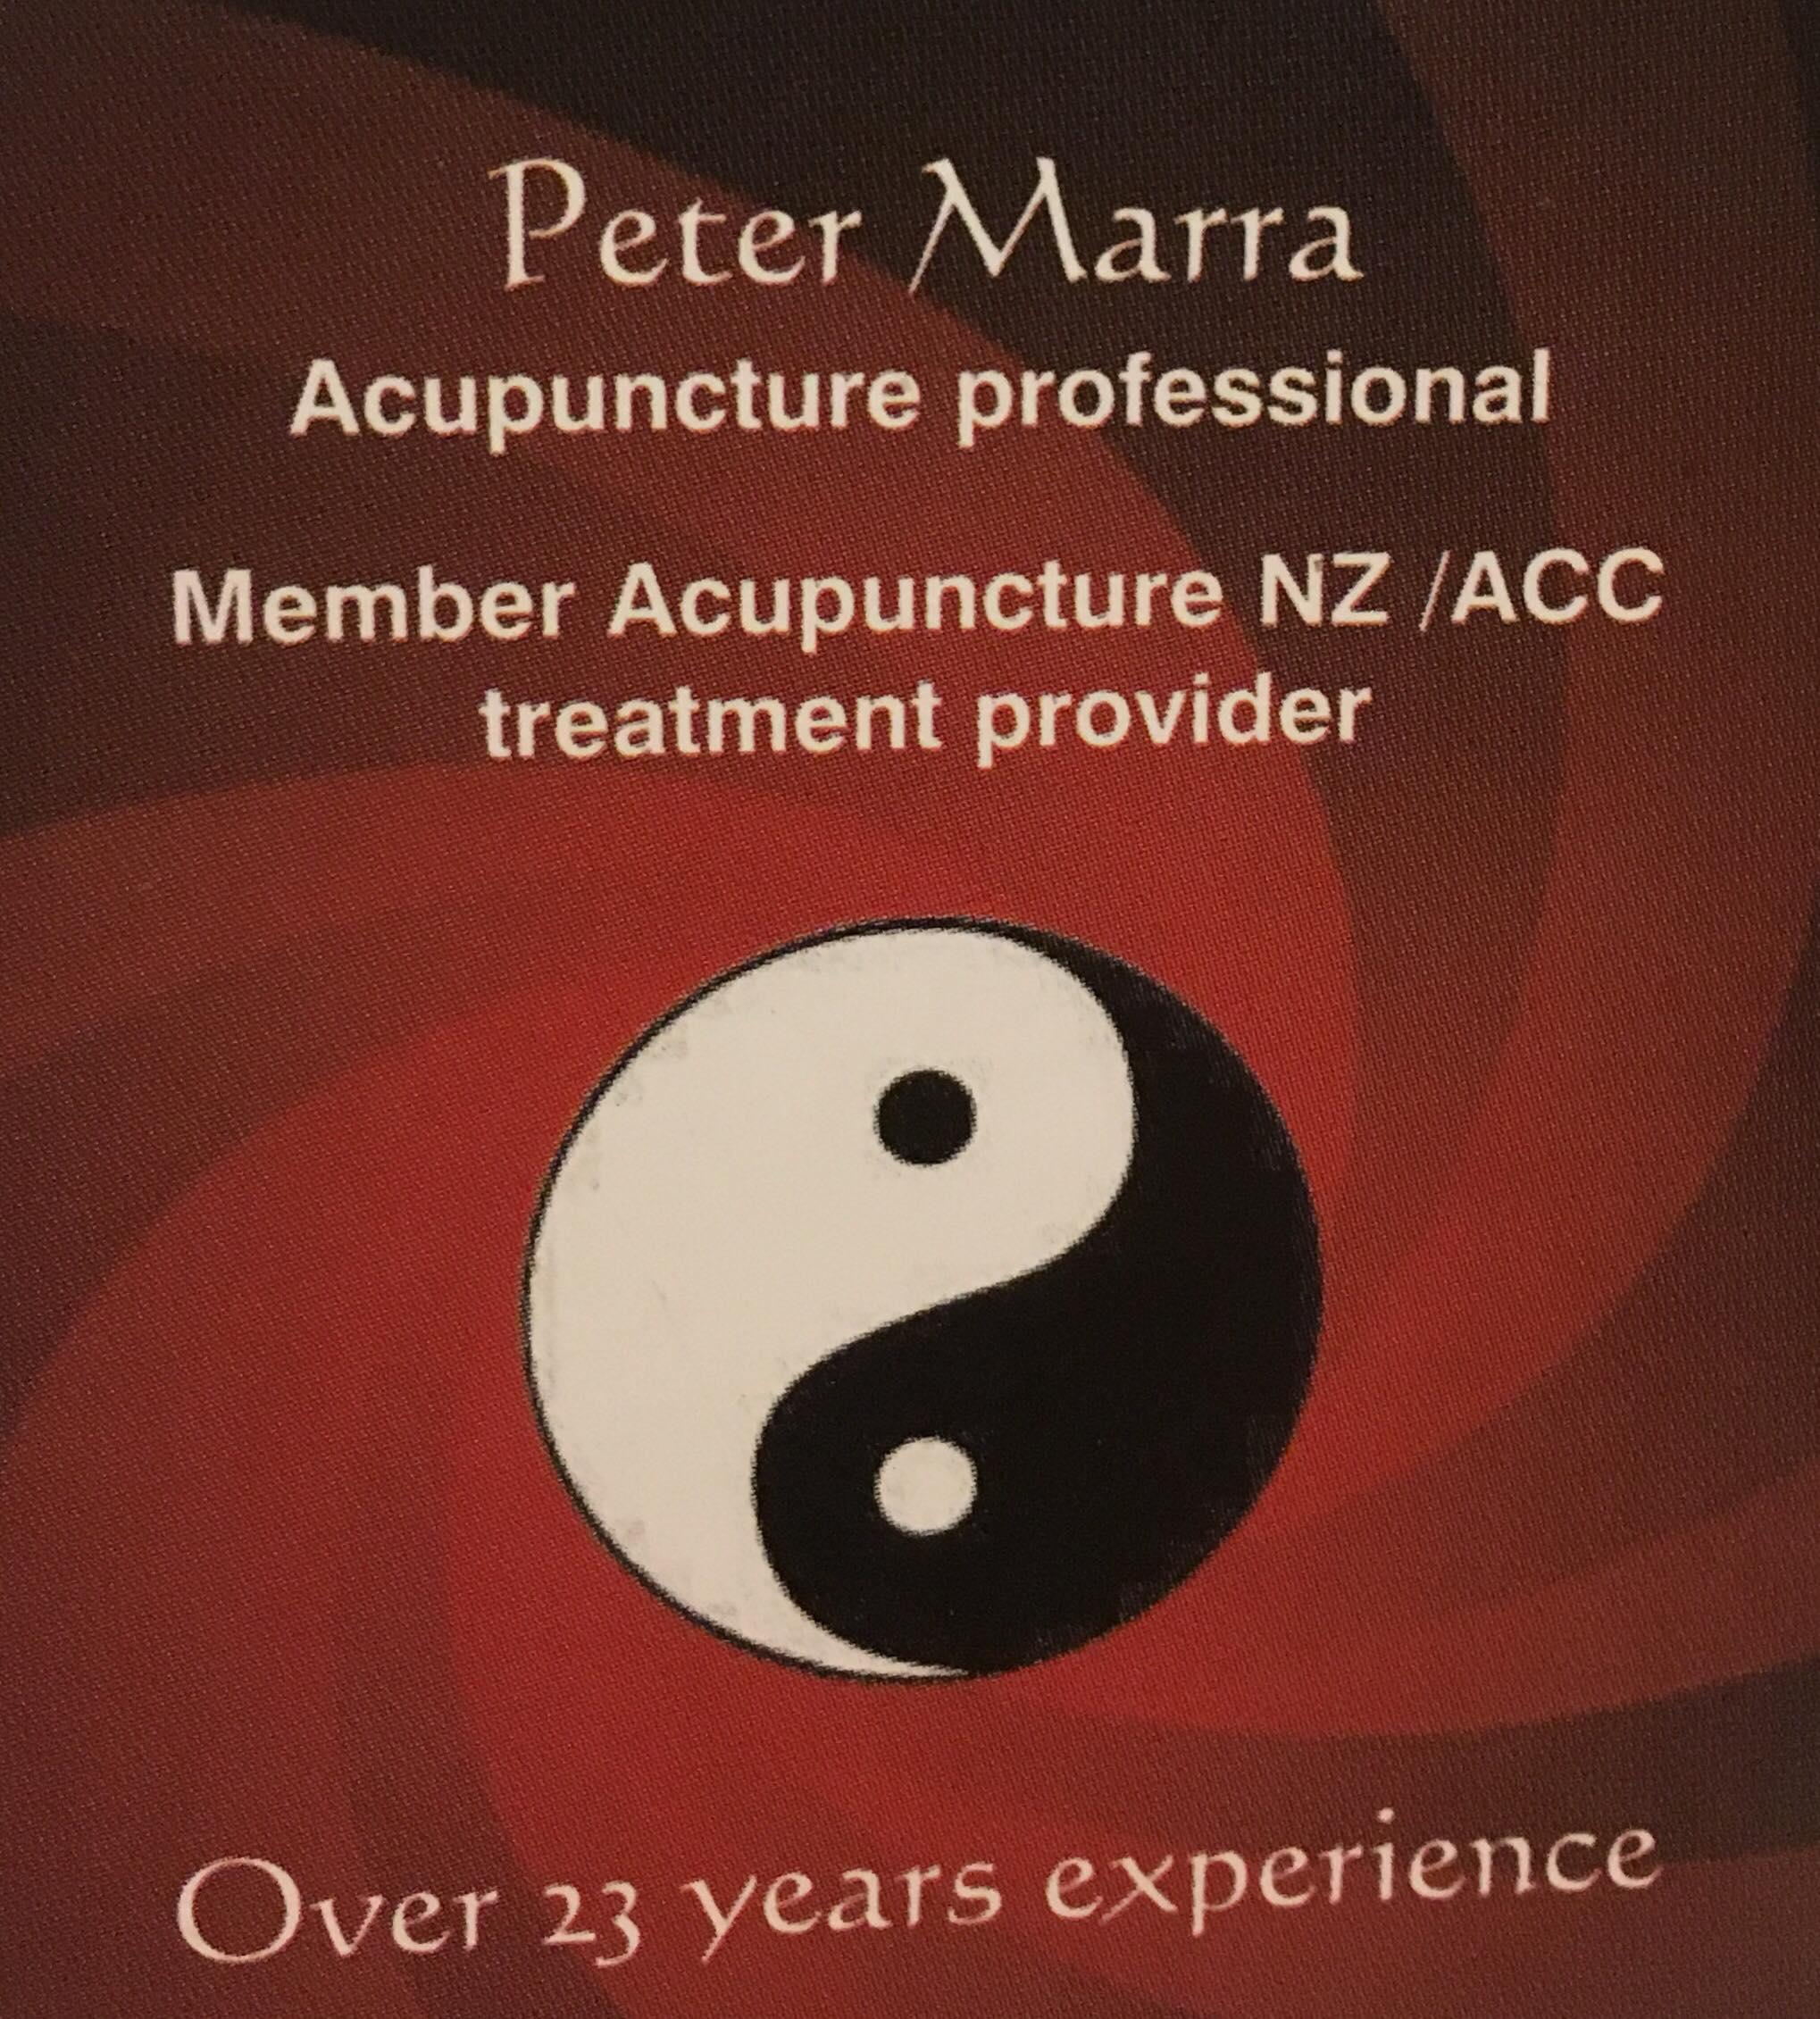 Peter Marra Acupuncture Professional